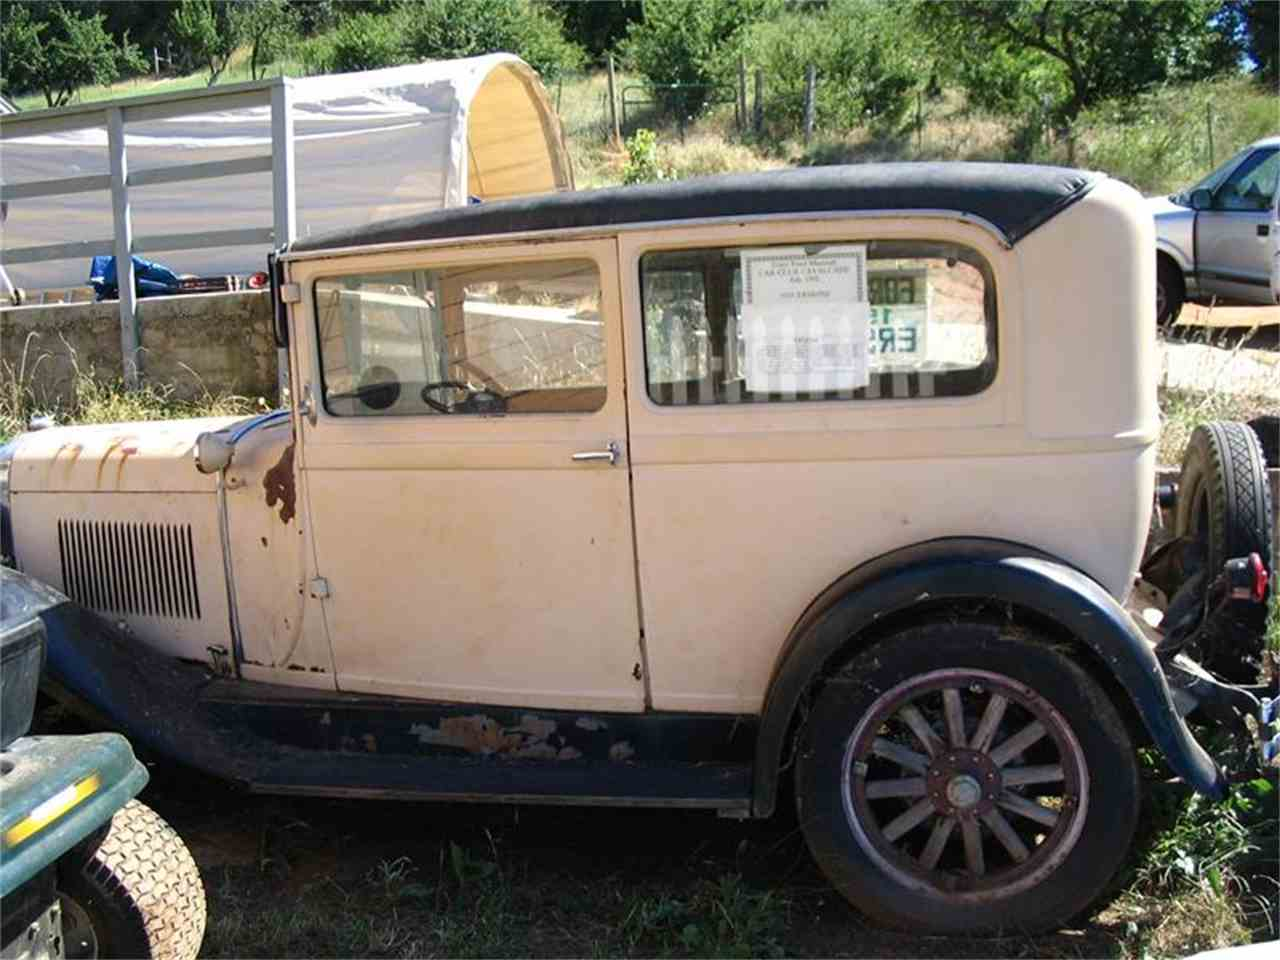 Large Picture of 1928 Studebaker Erskine located in California - $24,000.00 Offered by Classic Car Guy - EAHW